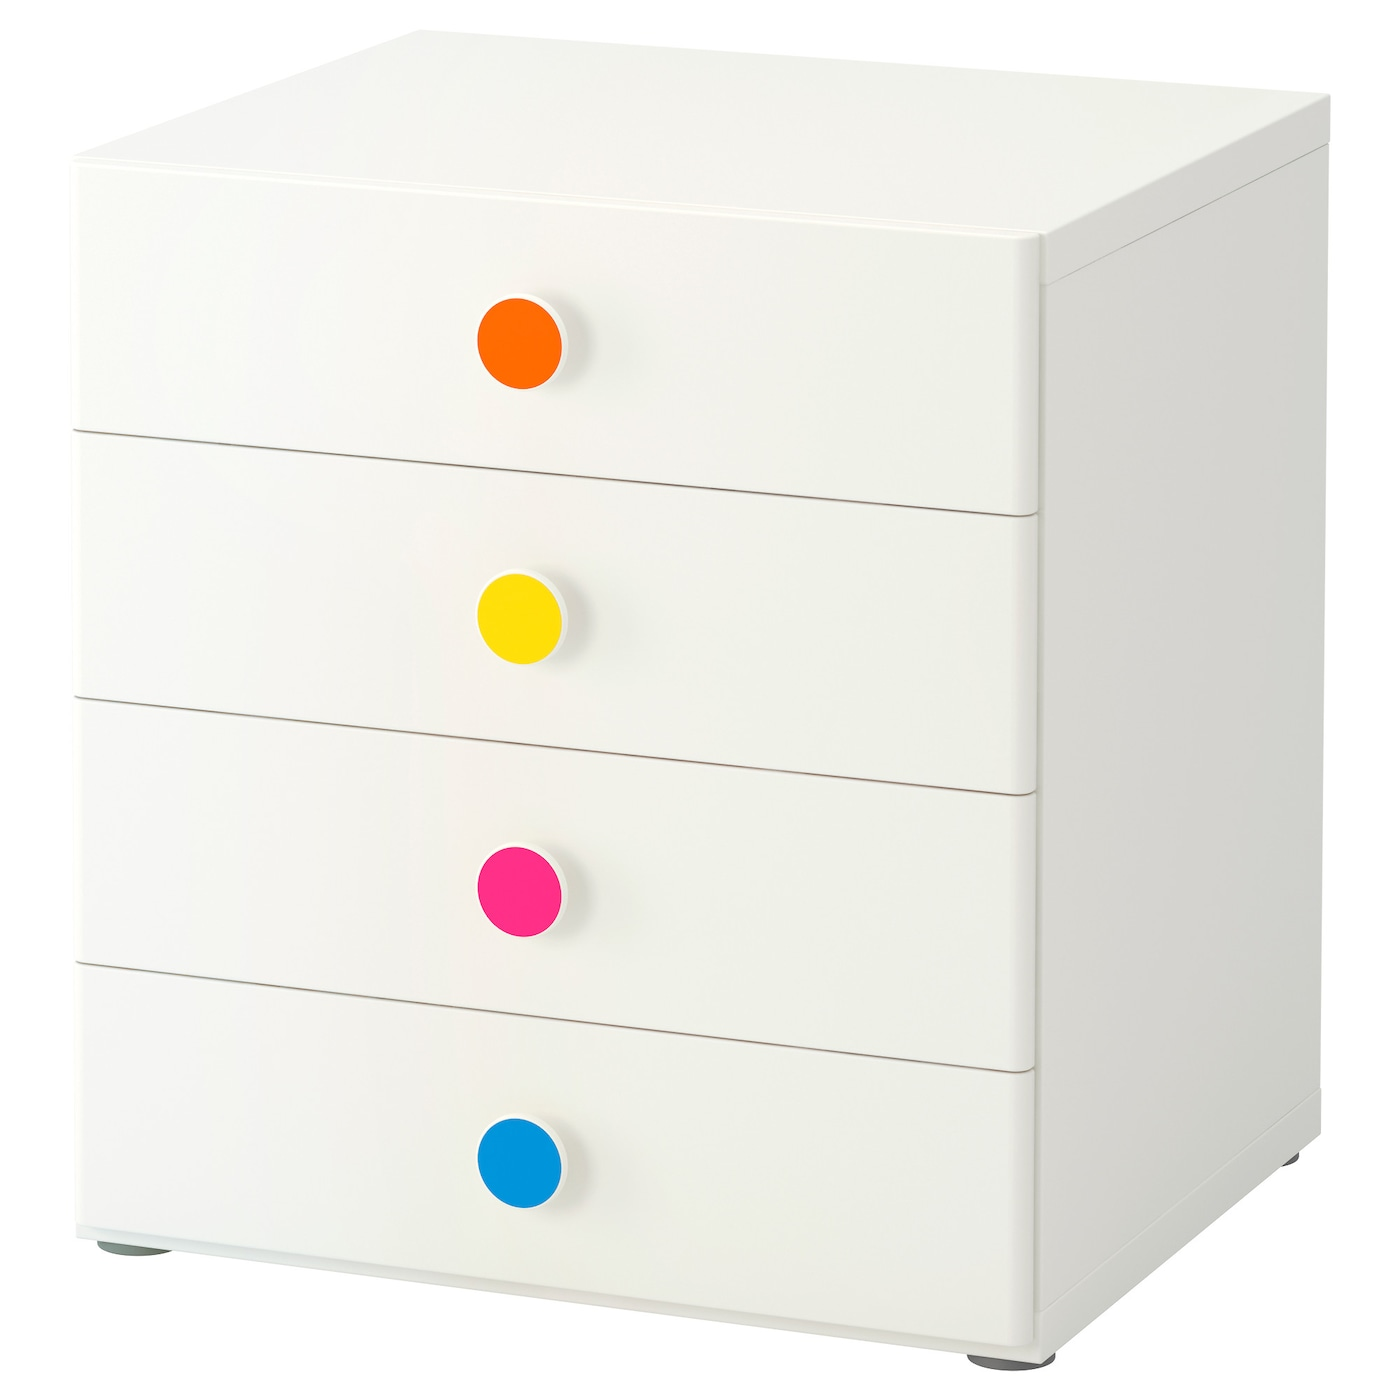 IKEA STUVA/FÖLJA storage combination with drawers Can be used either free-standing or wall-mounted.